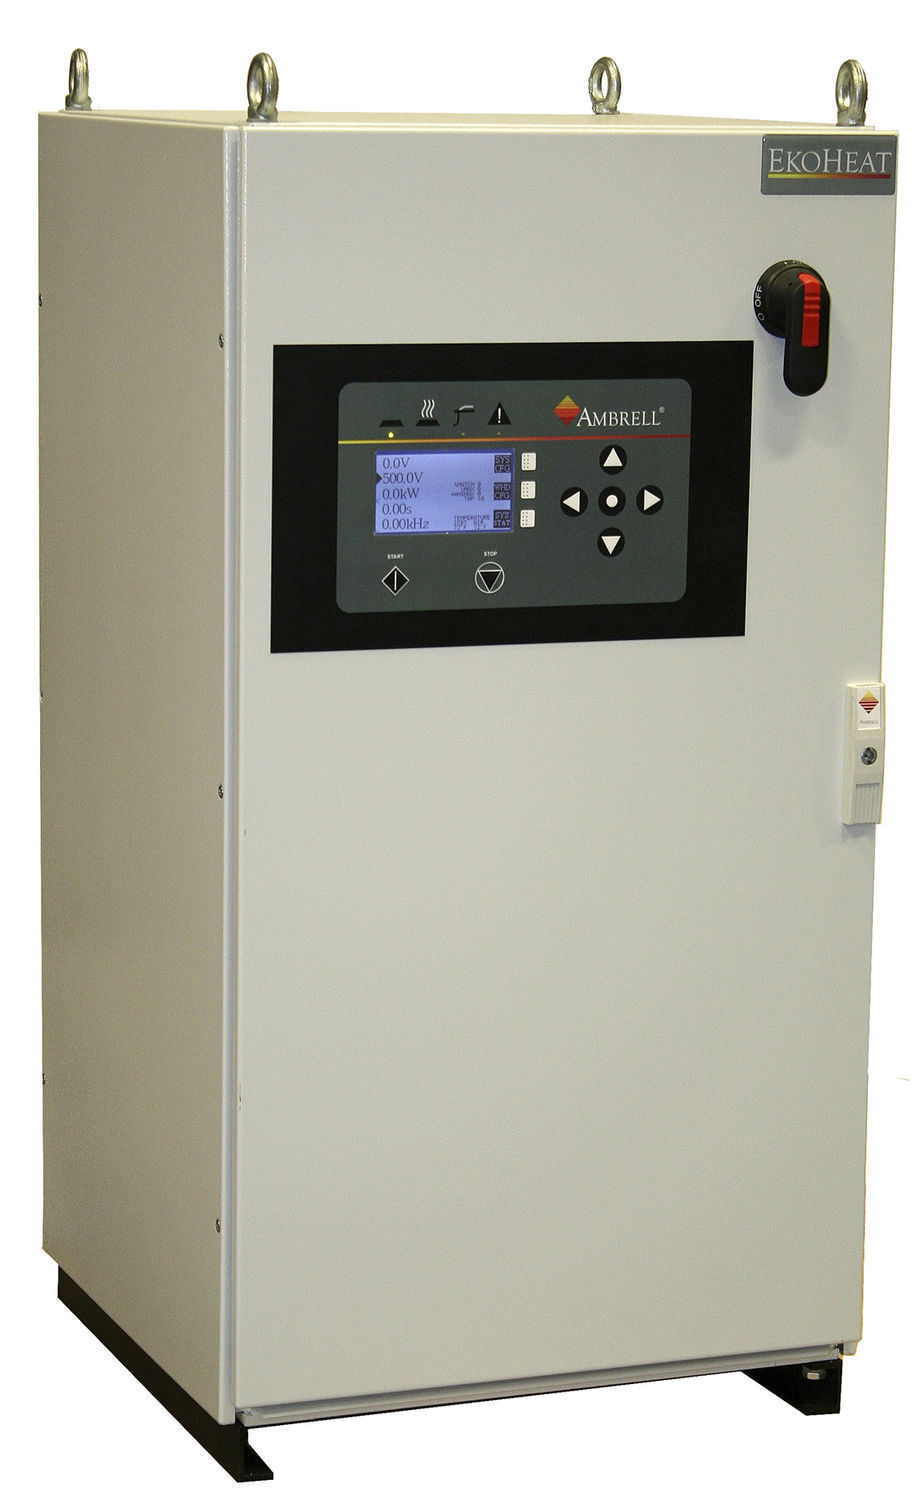 EKOHEAT 75/3 Induction heater 75 kW, 2 – 5 kHz